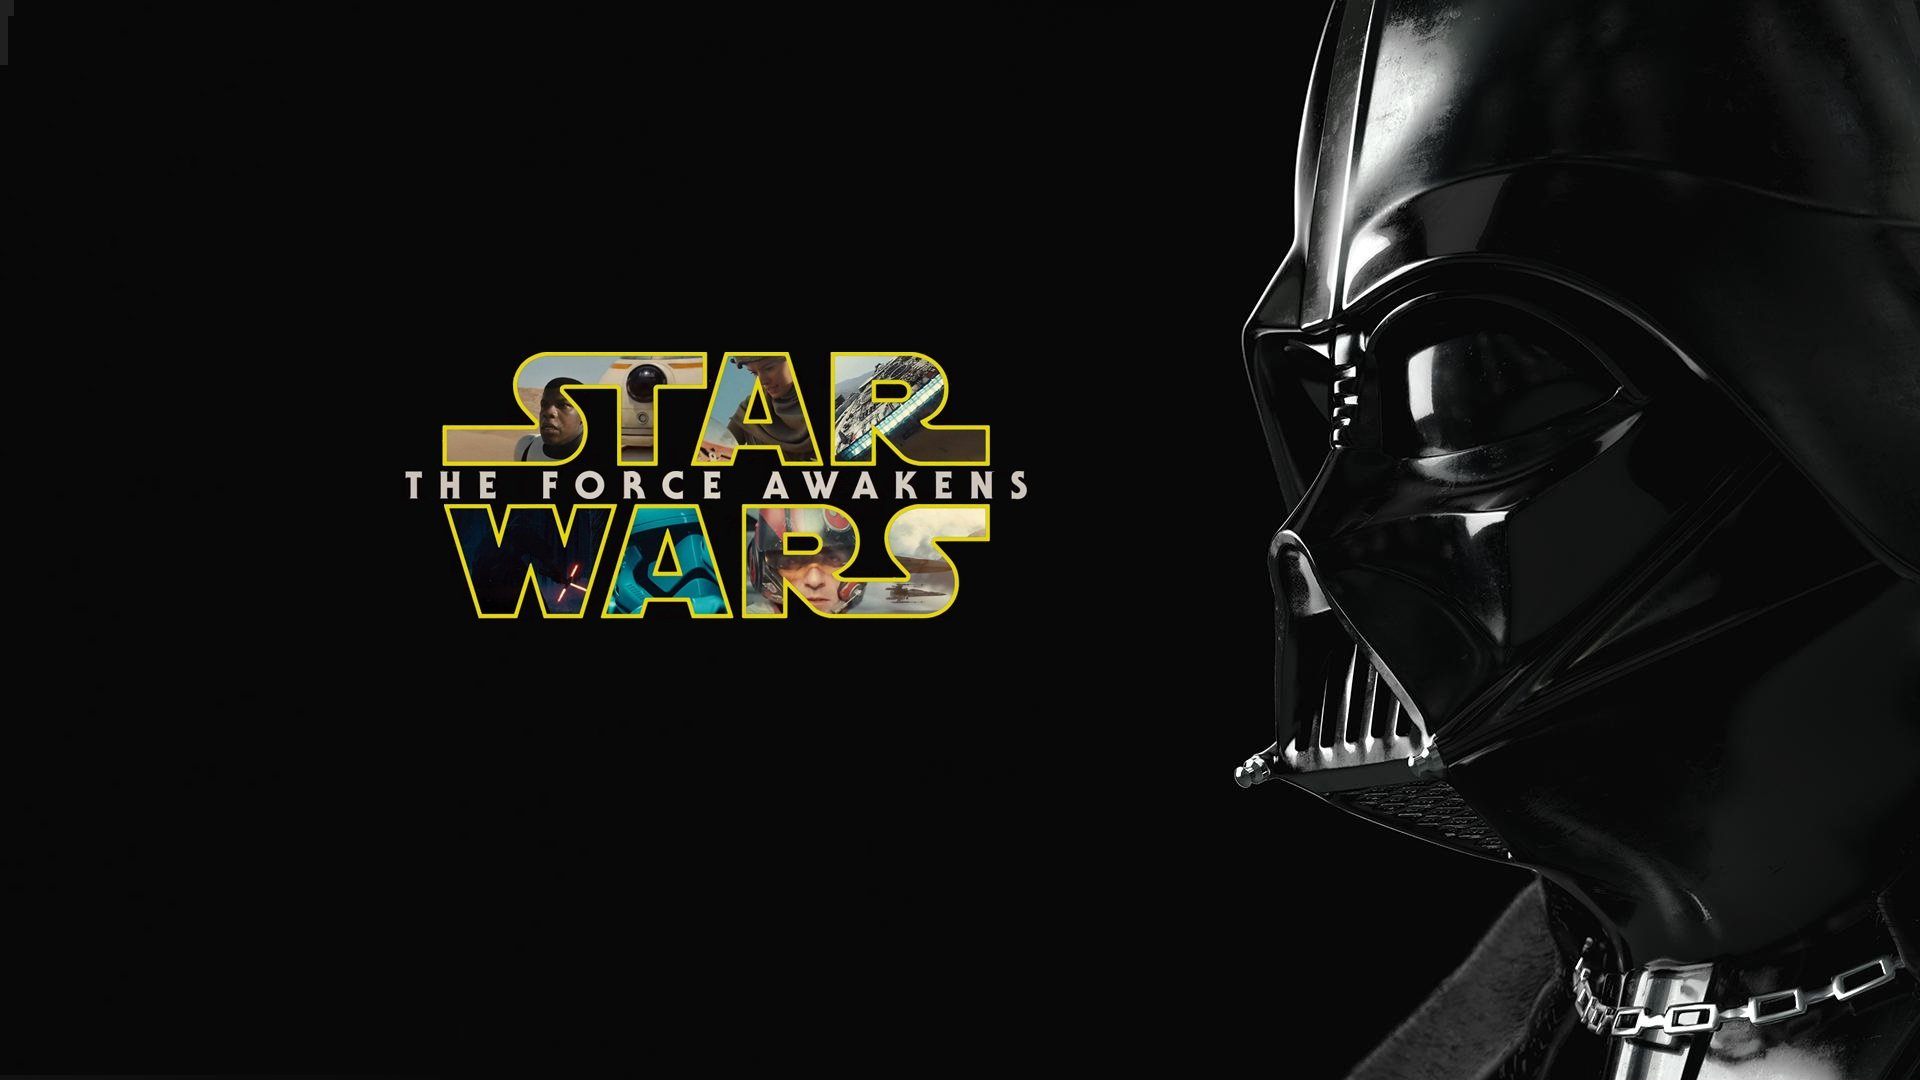 Darth Vader With Star Wars Force Awakens Hd Wallpaper